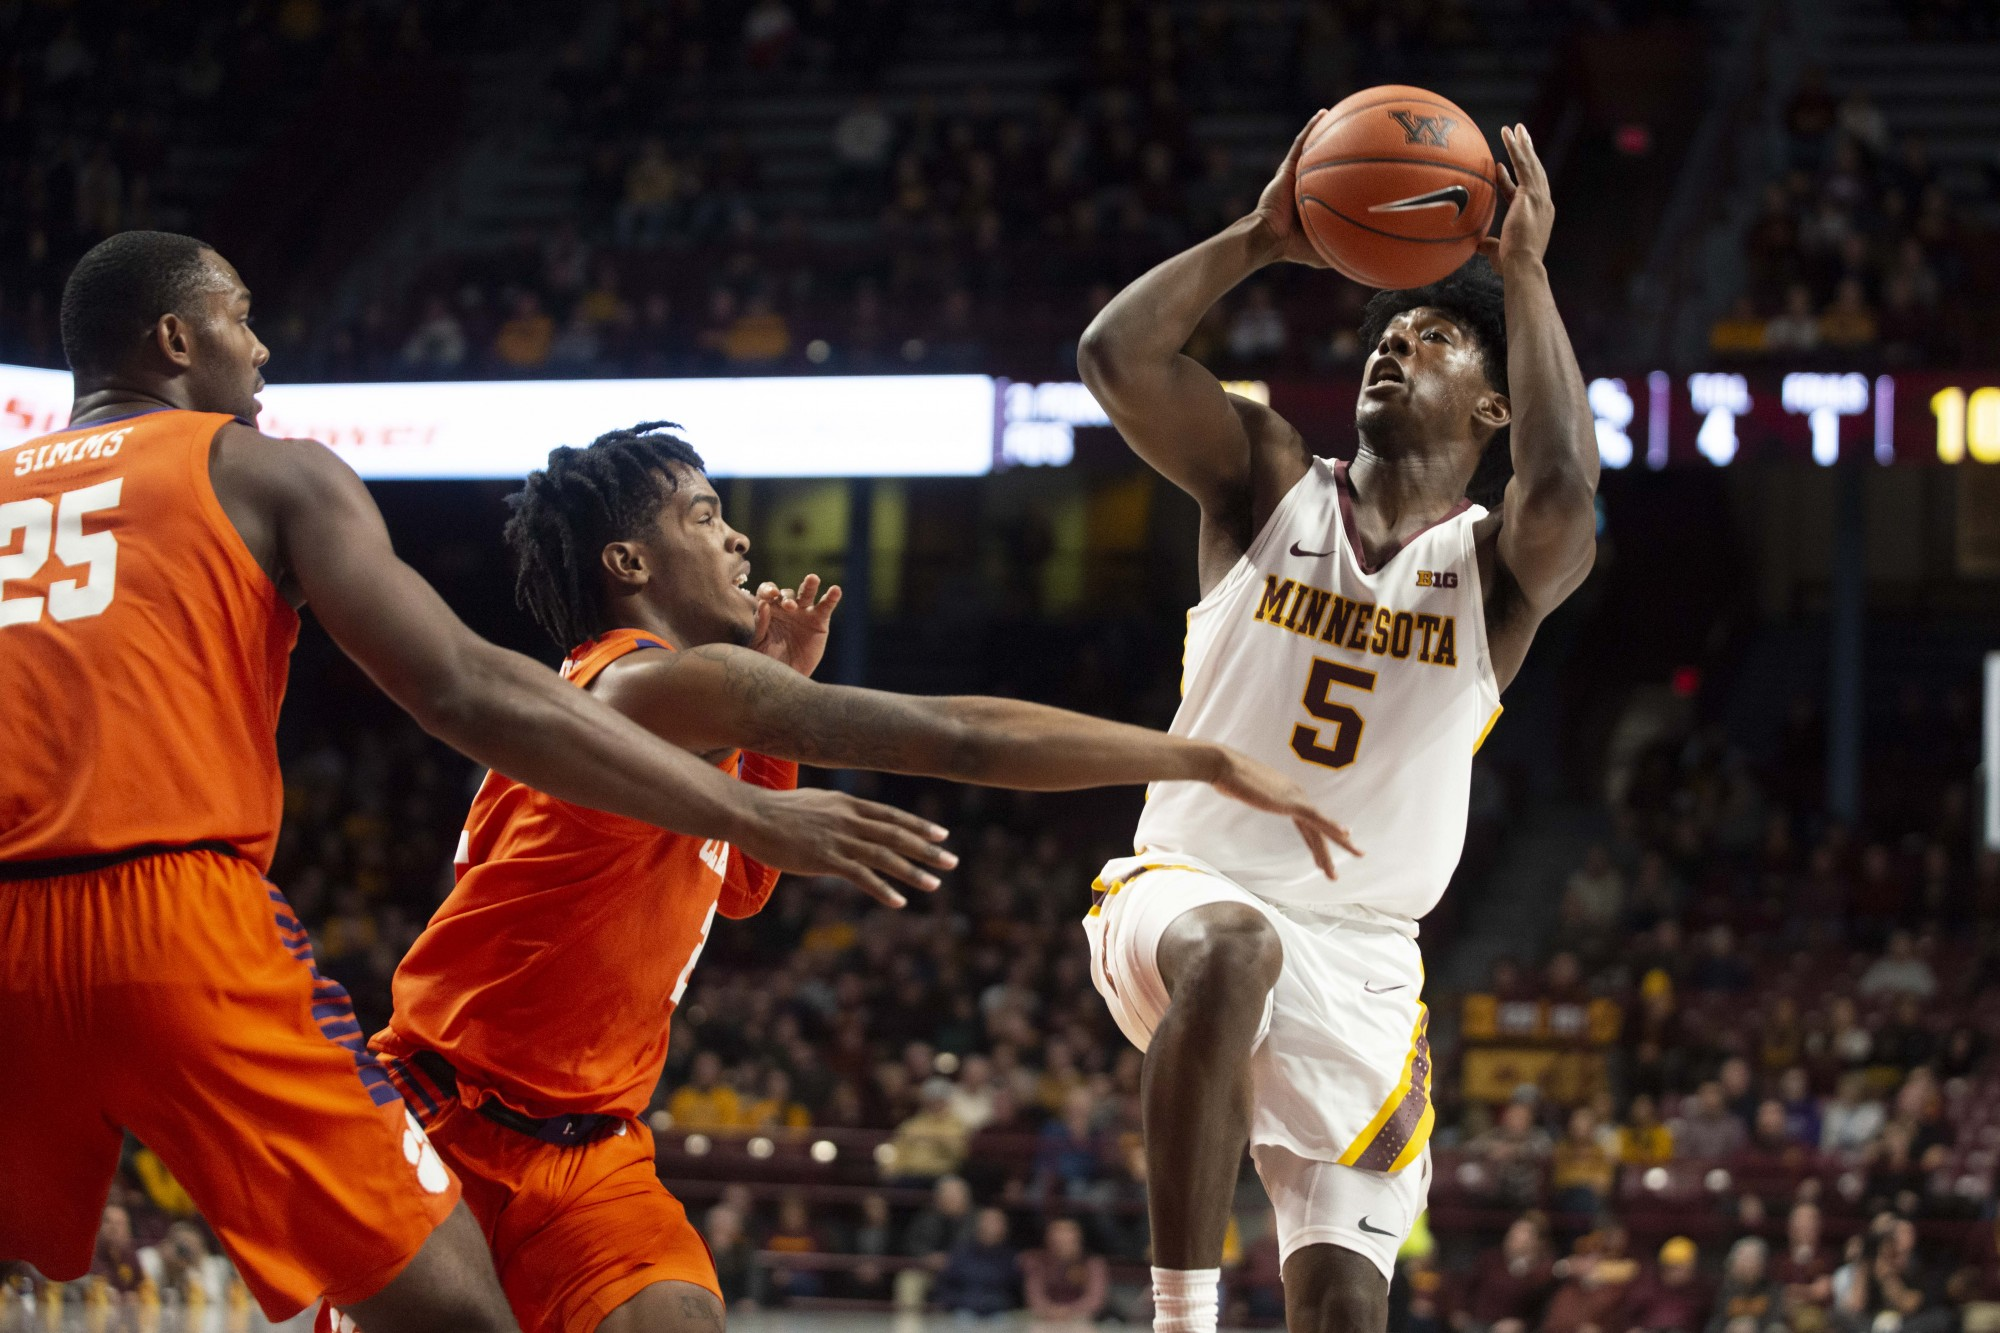 Guard Marcus Carr jumps to shoot the ball at Williams Arena on Monday, Dec. 2. The Gophers defeated Clemson 78-60.